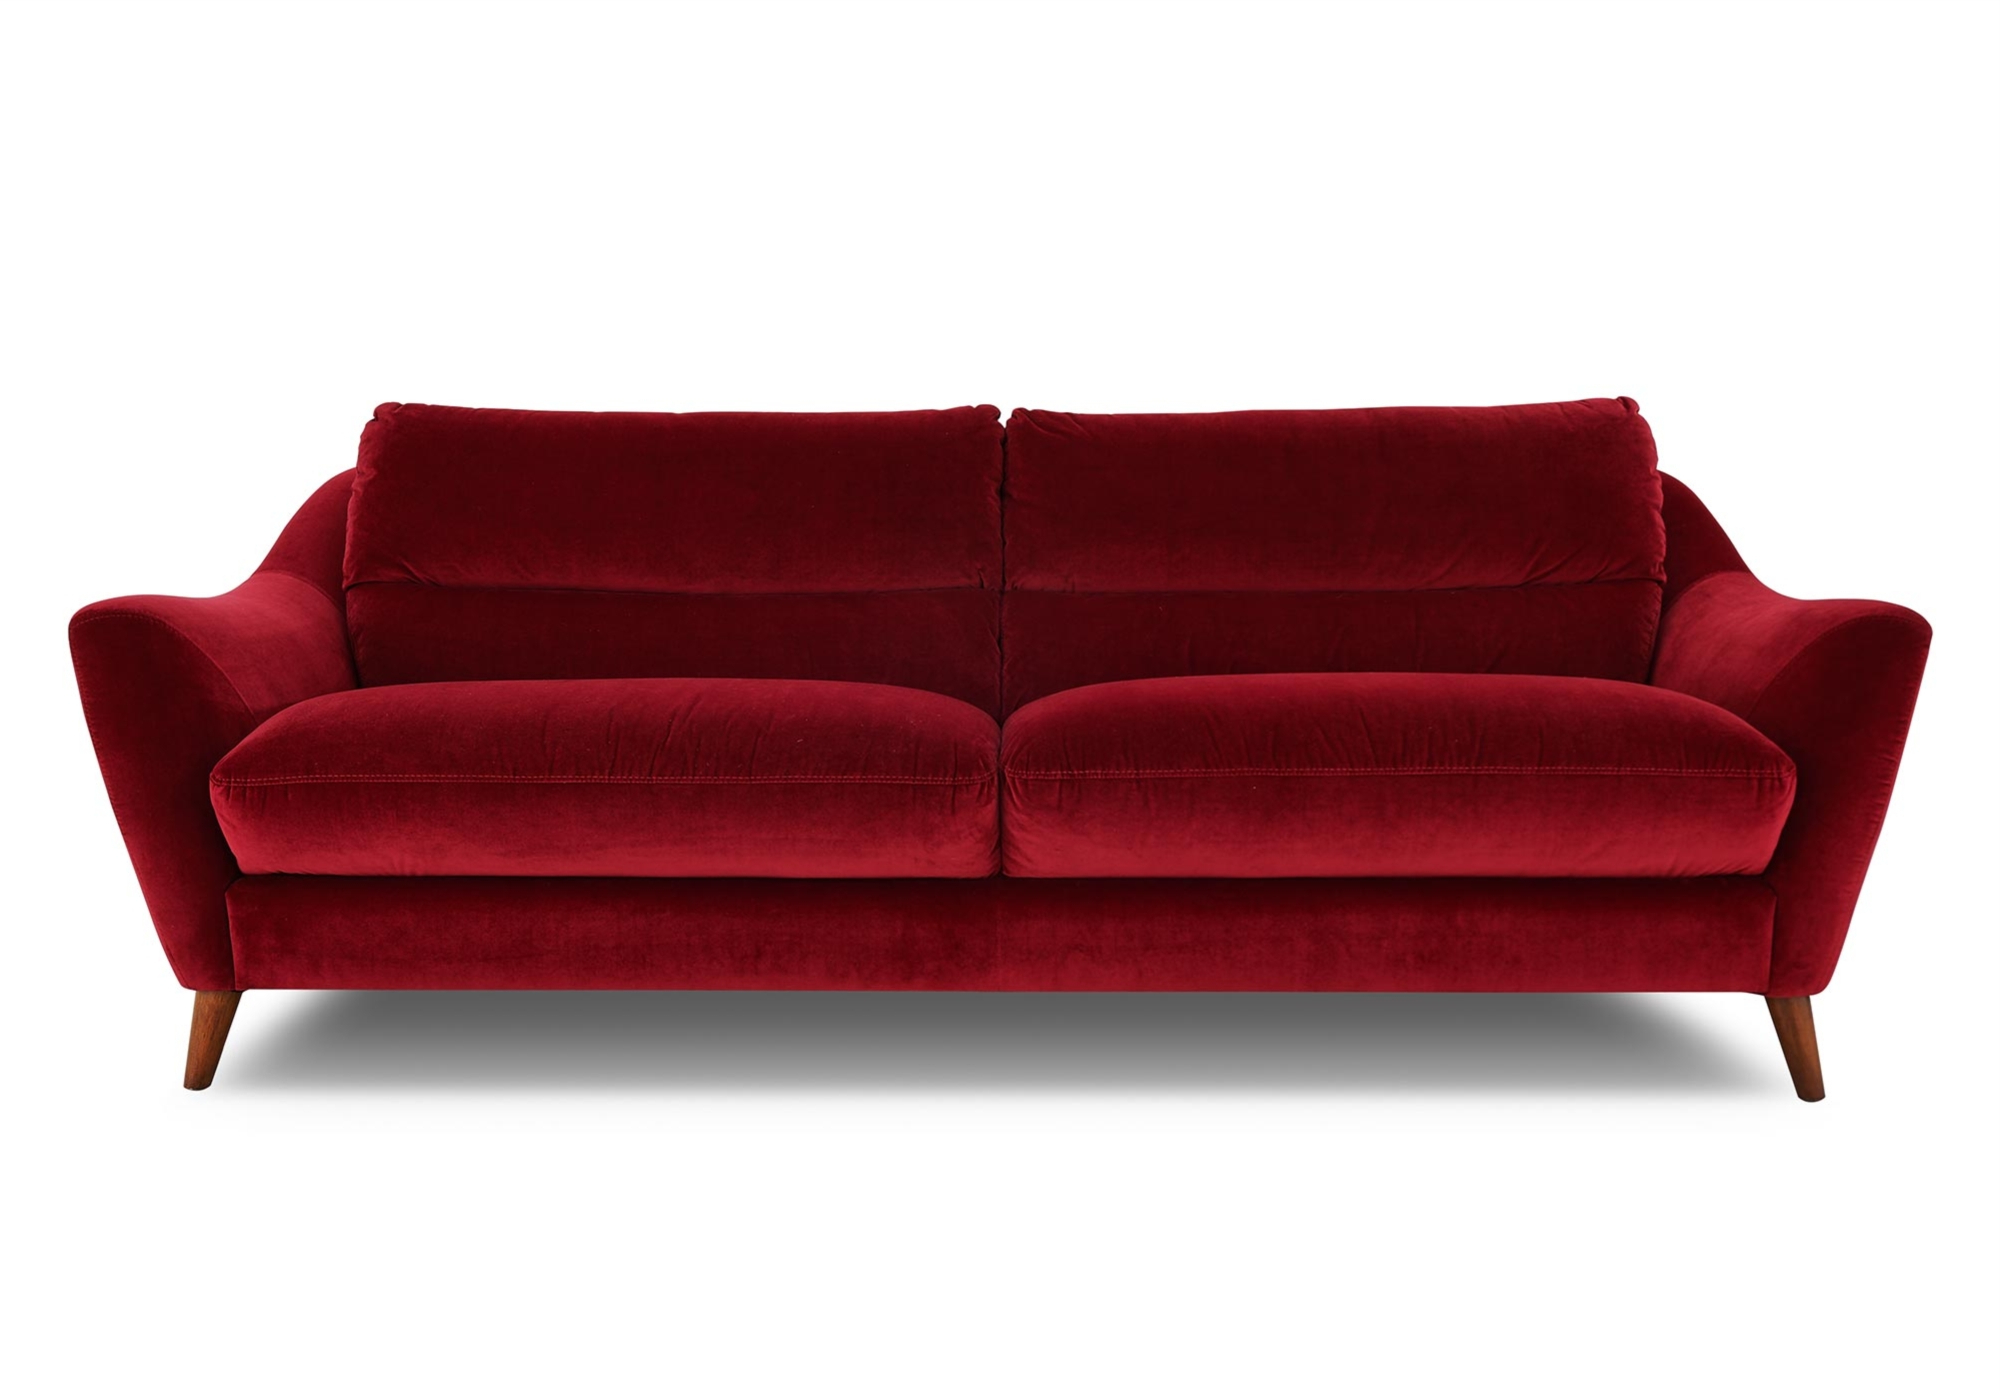 Red Sofas And Chairs Inside Well Known Sofa: Beautiful Fabric Sofa Fabric Sofas On Sale, Fabric Sectional (View 17 of 20)